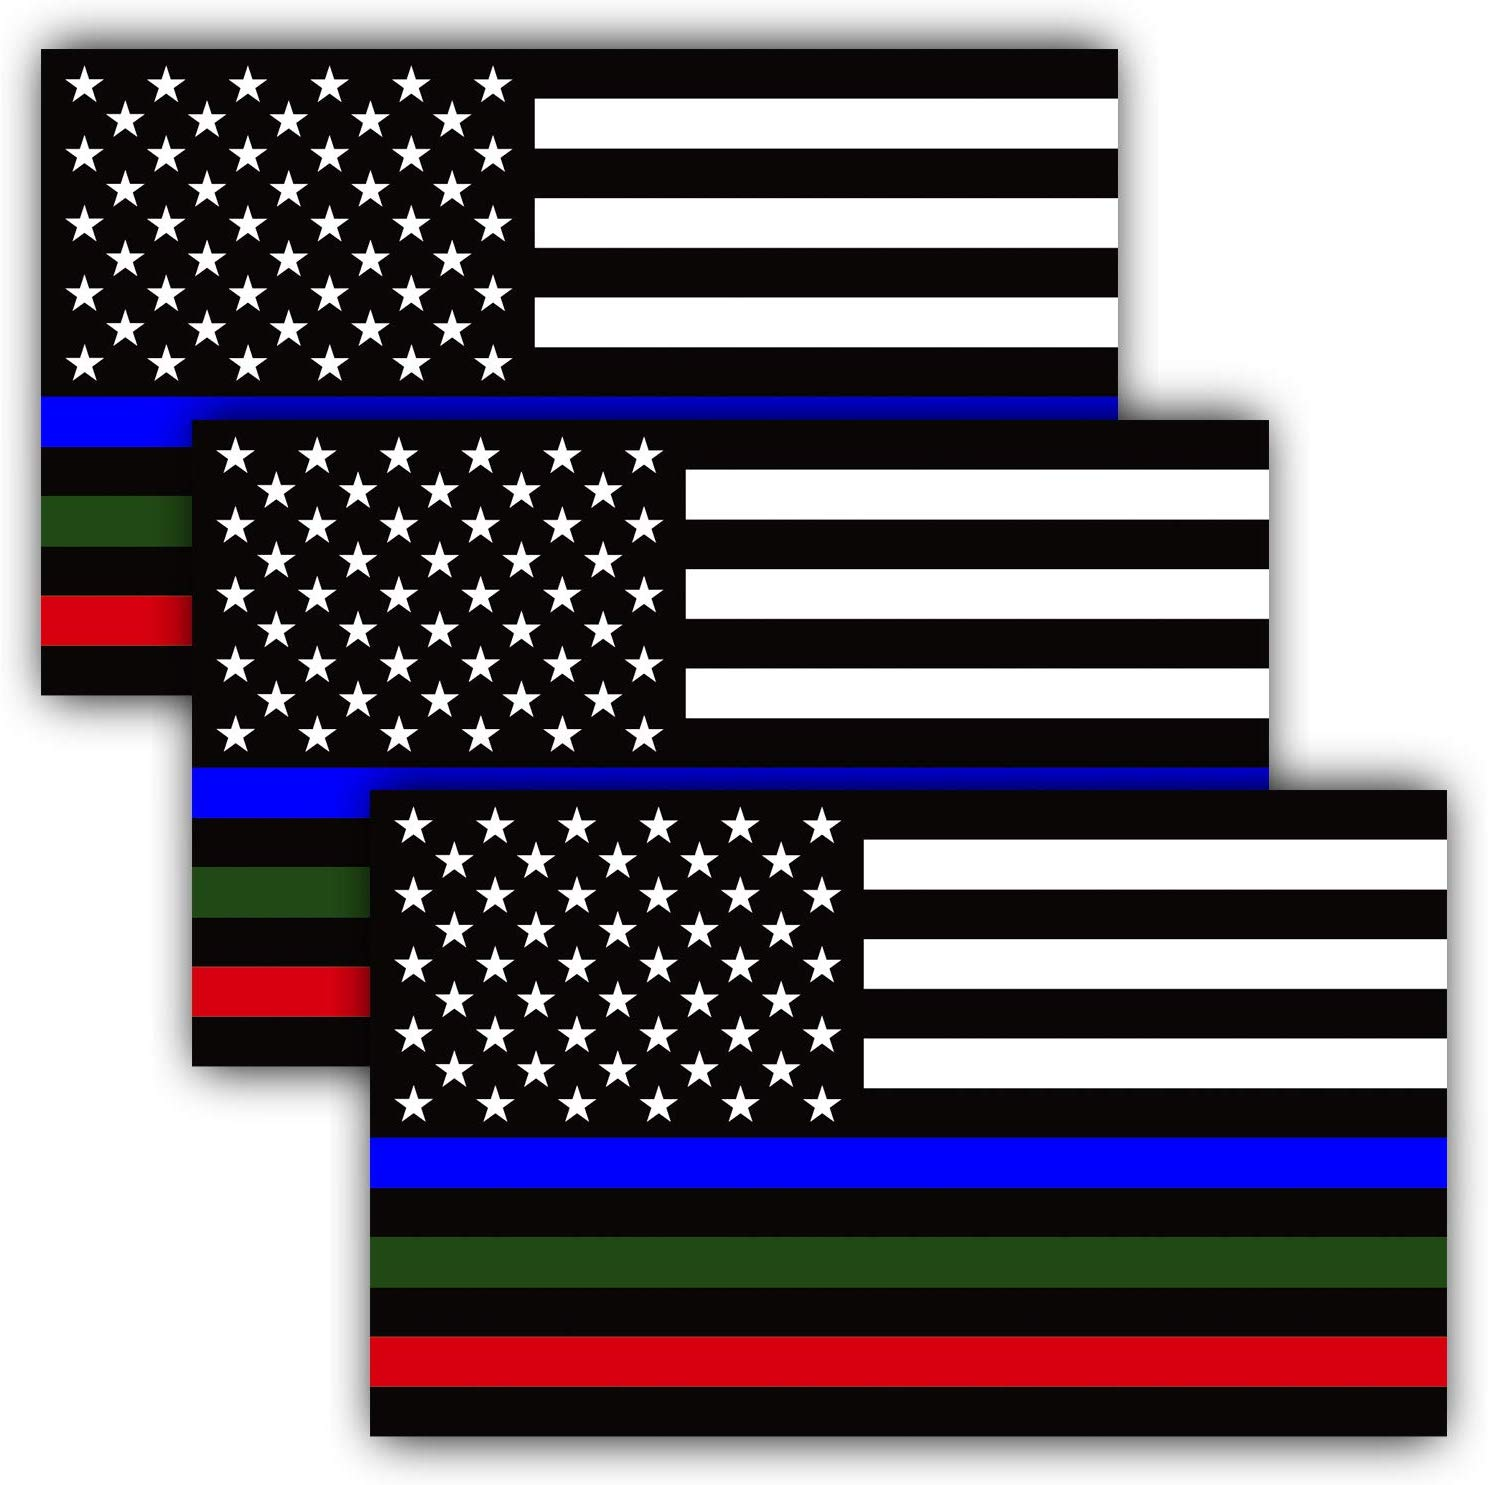 Anley 5 X 3 Inch Thin Line Us Flag Decal Blue Green And Red